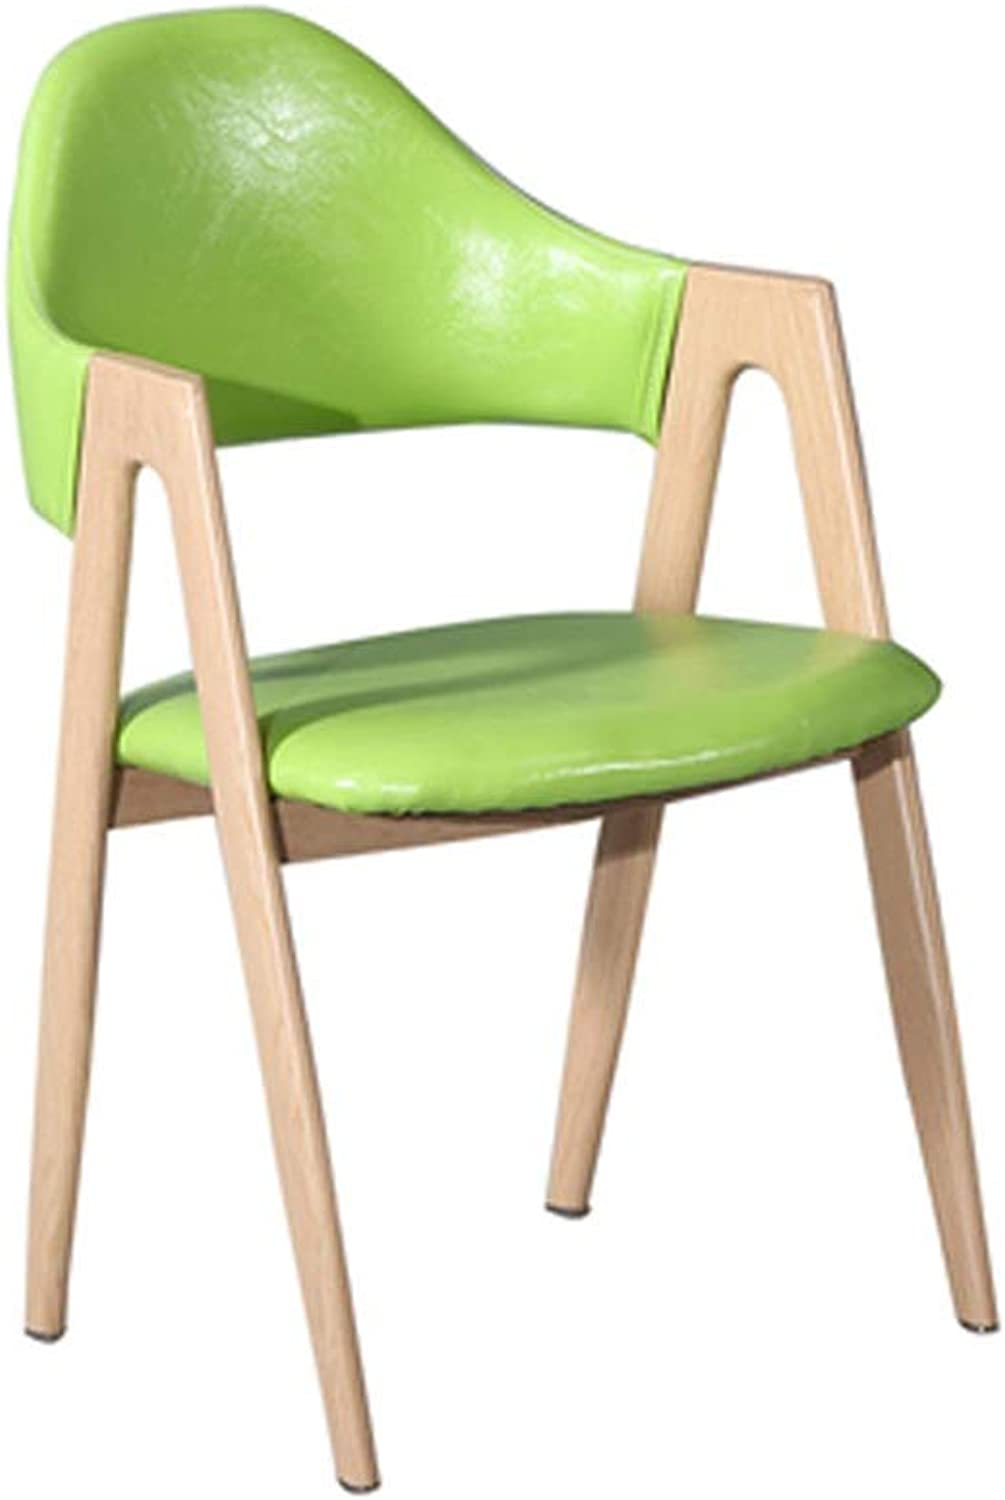 Barstool Nordic bar Stool Wrought Iron Leather pad with backrest Casual Black Green 52  46  81cm (color   Green)